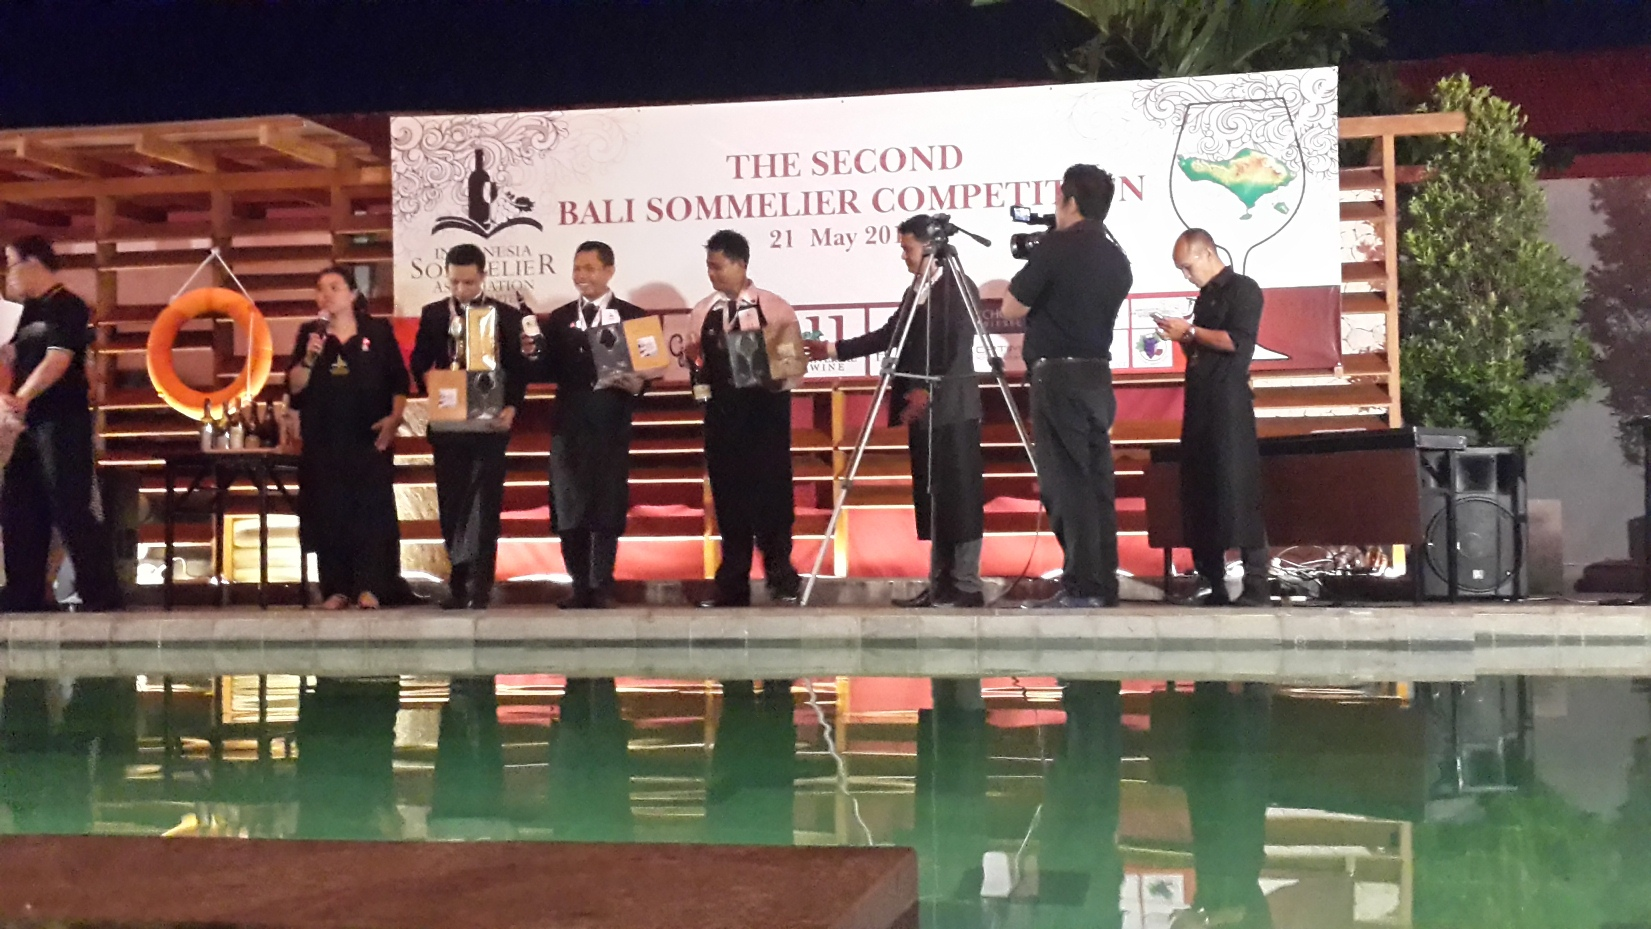 Sommelier Competition Bali 2015